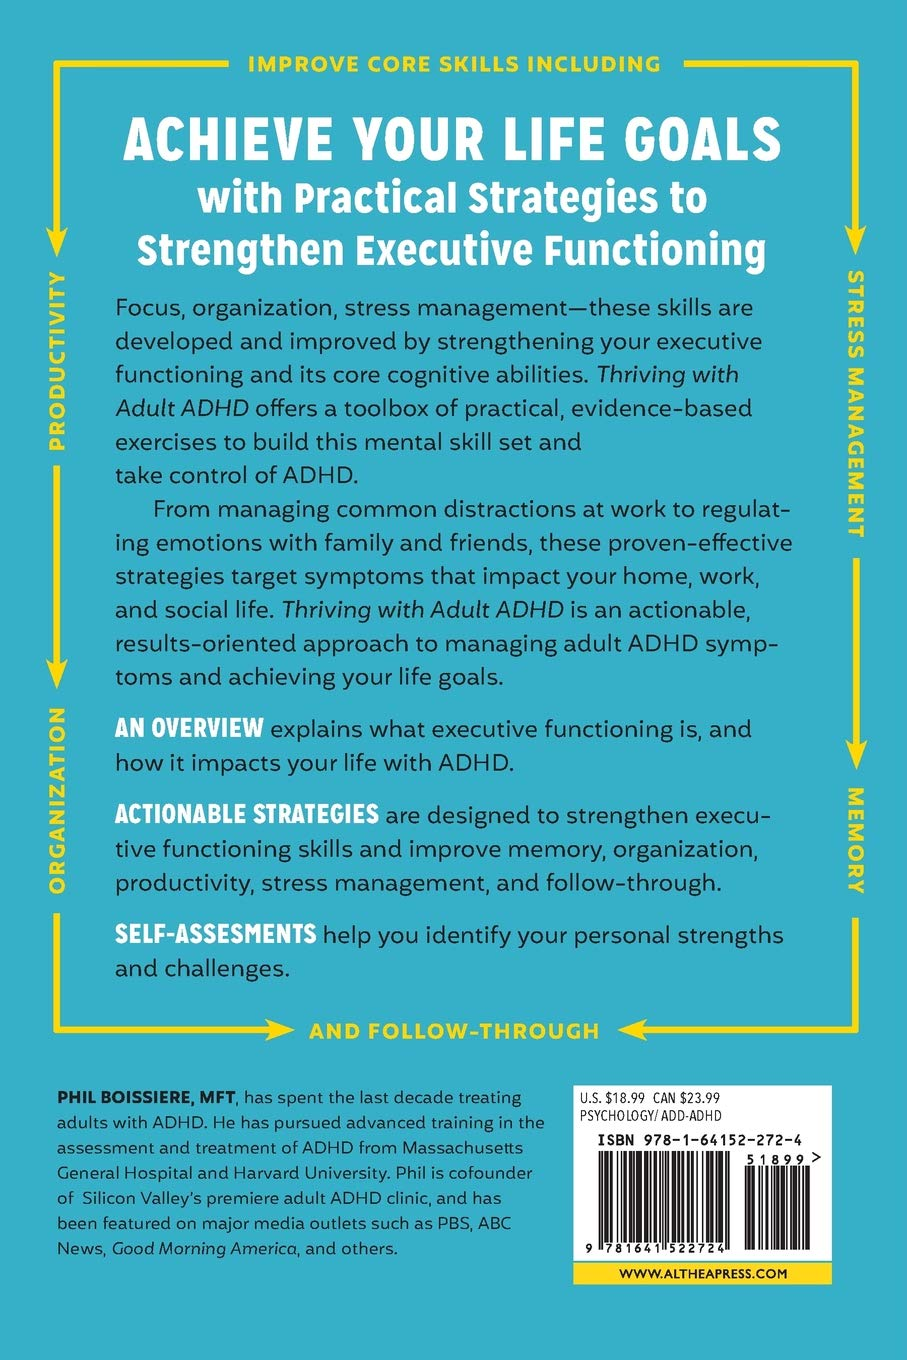 Strengthening Executive Function >> Thriving With Adult Adhd Skills To Strengthen Executive